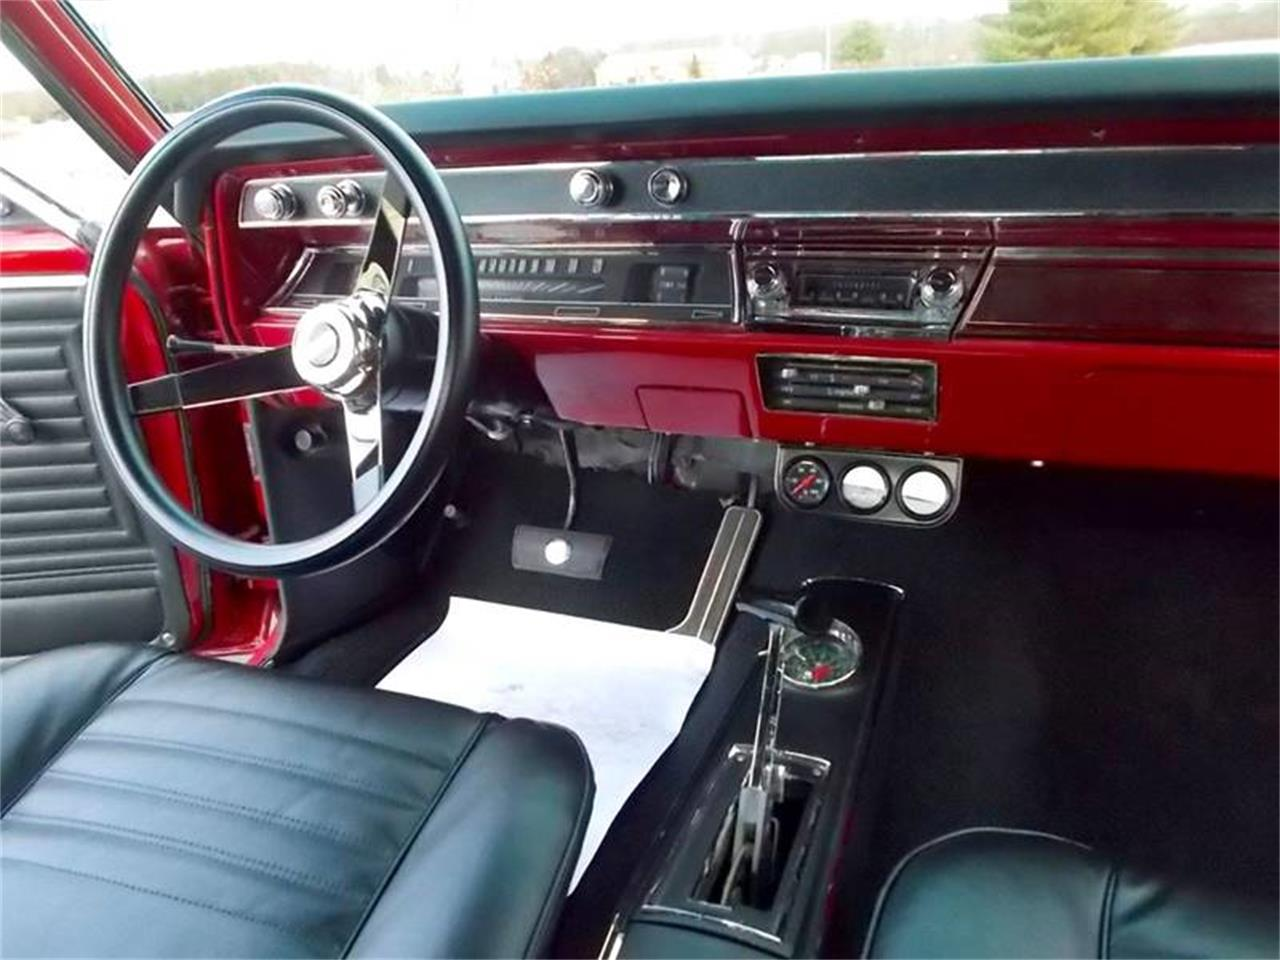 Large Picture of 1967 Chevrolet Chevelle Malibu located in Knightstown Indiana - $44,900.00 - P7S2